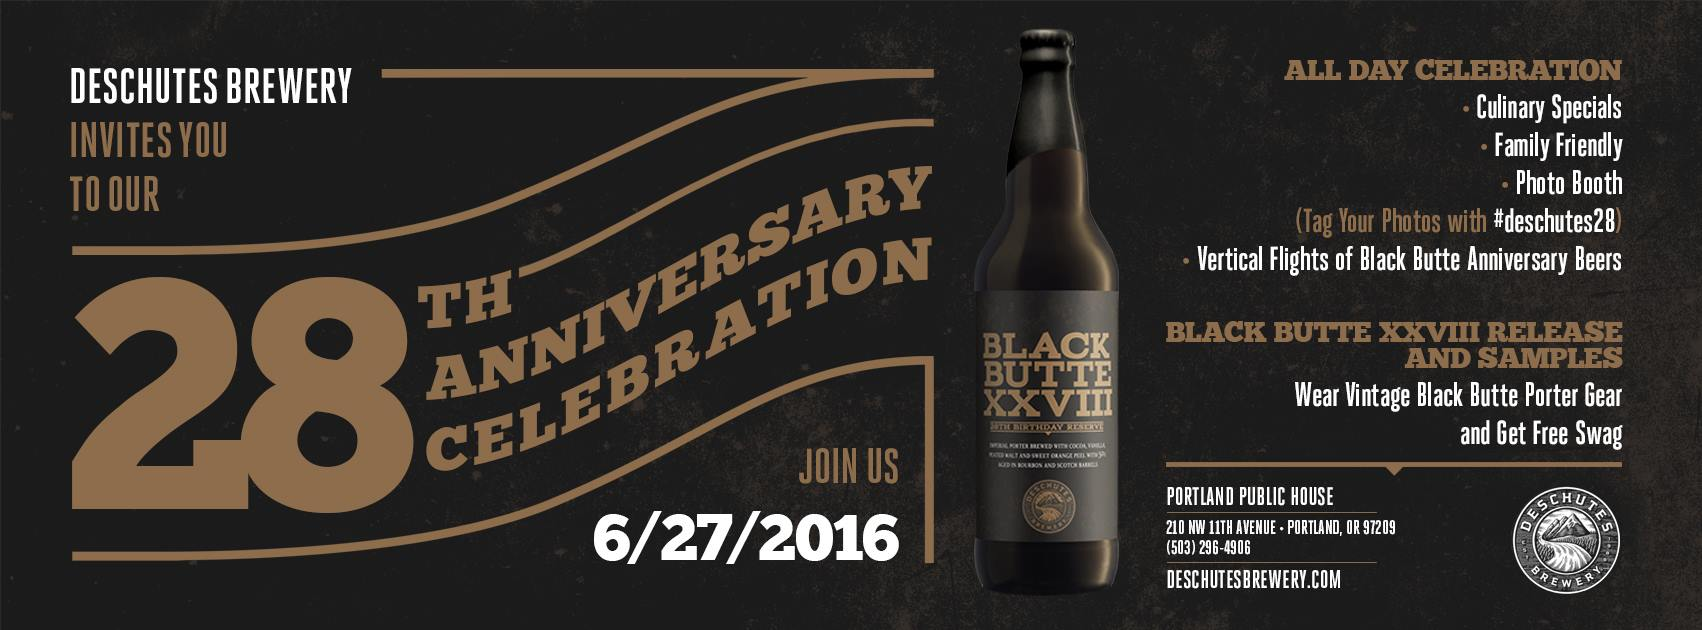 Deschutes 28th Anniversary Celebration - Portland